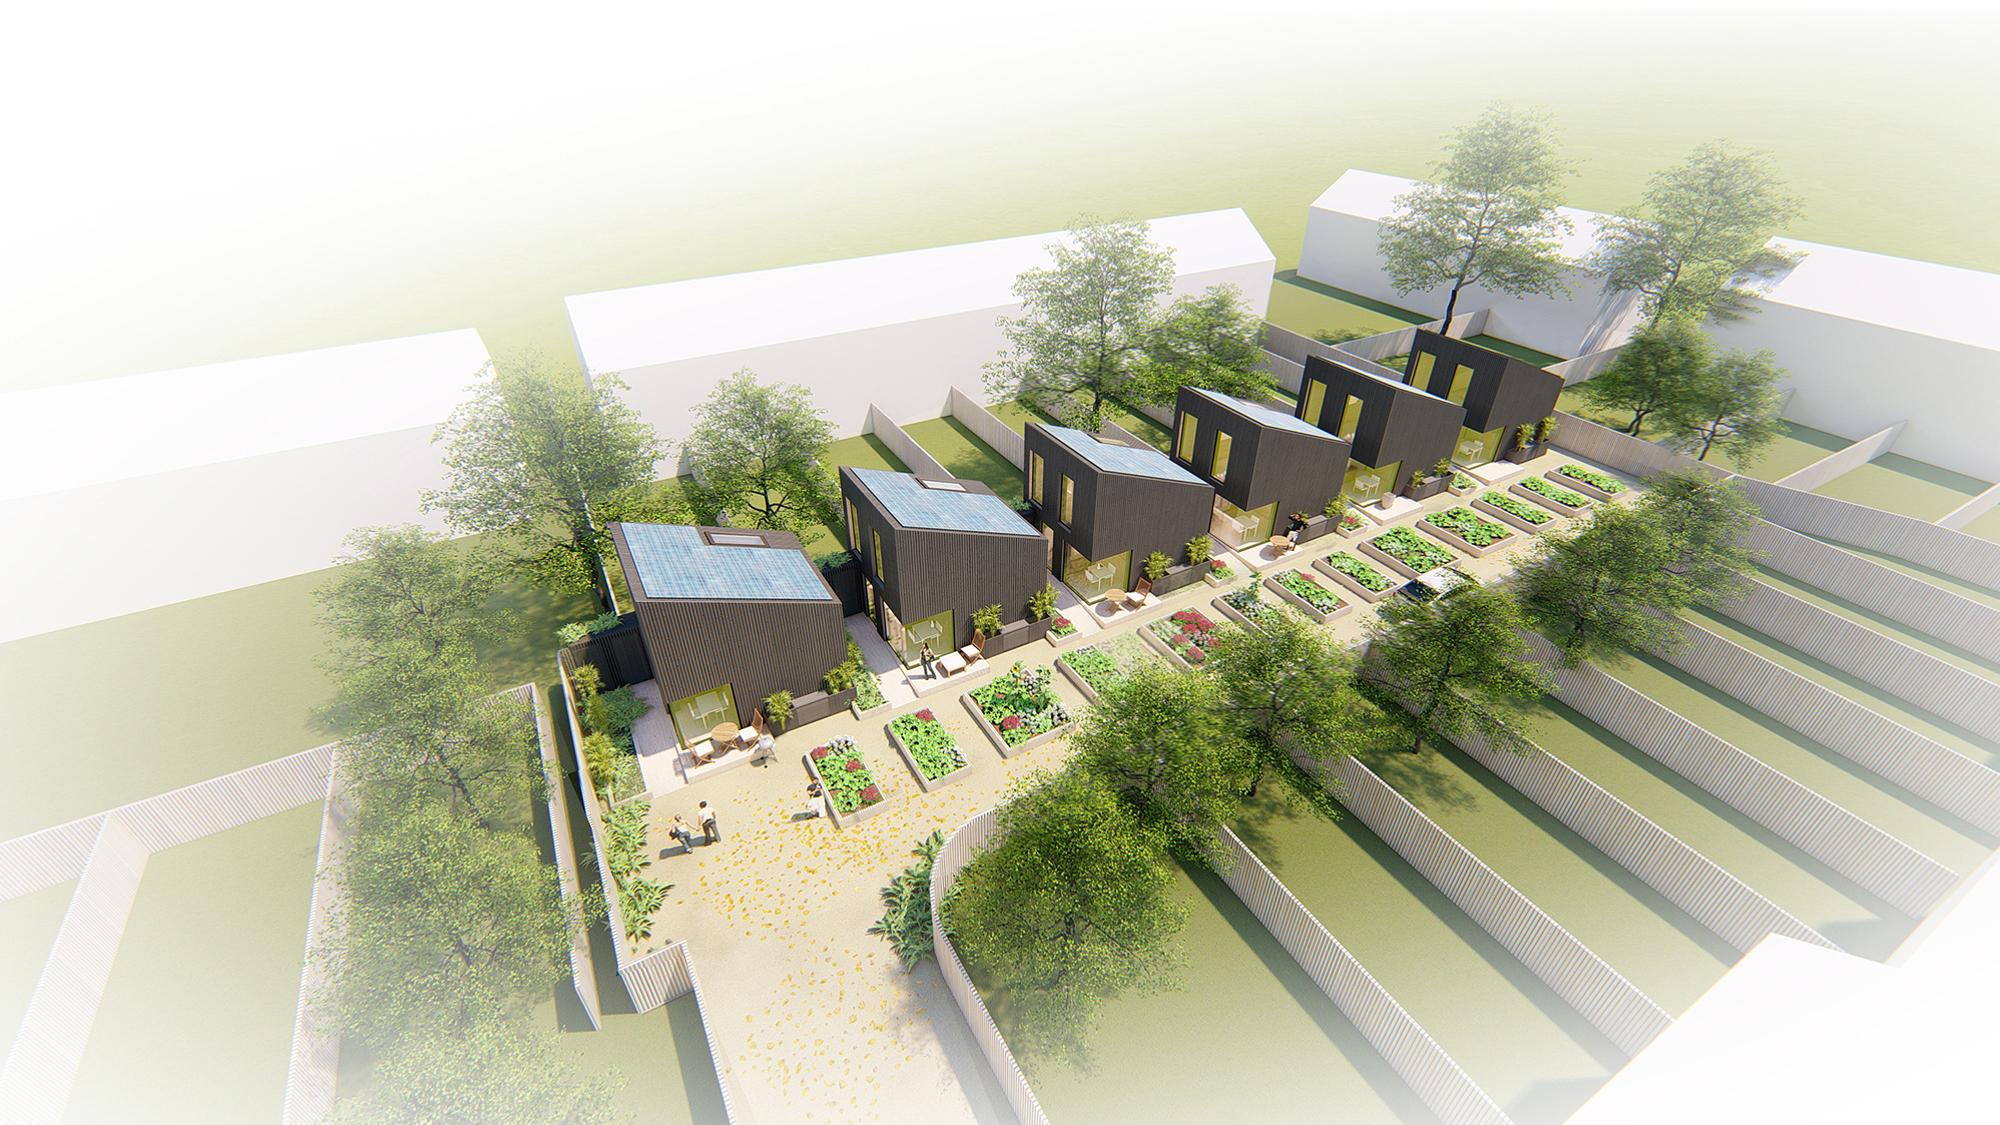 bird's eye view of six houses with dark cladding and slanted roofs and gardens in each yard